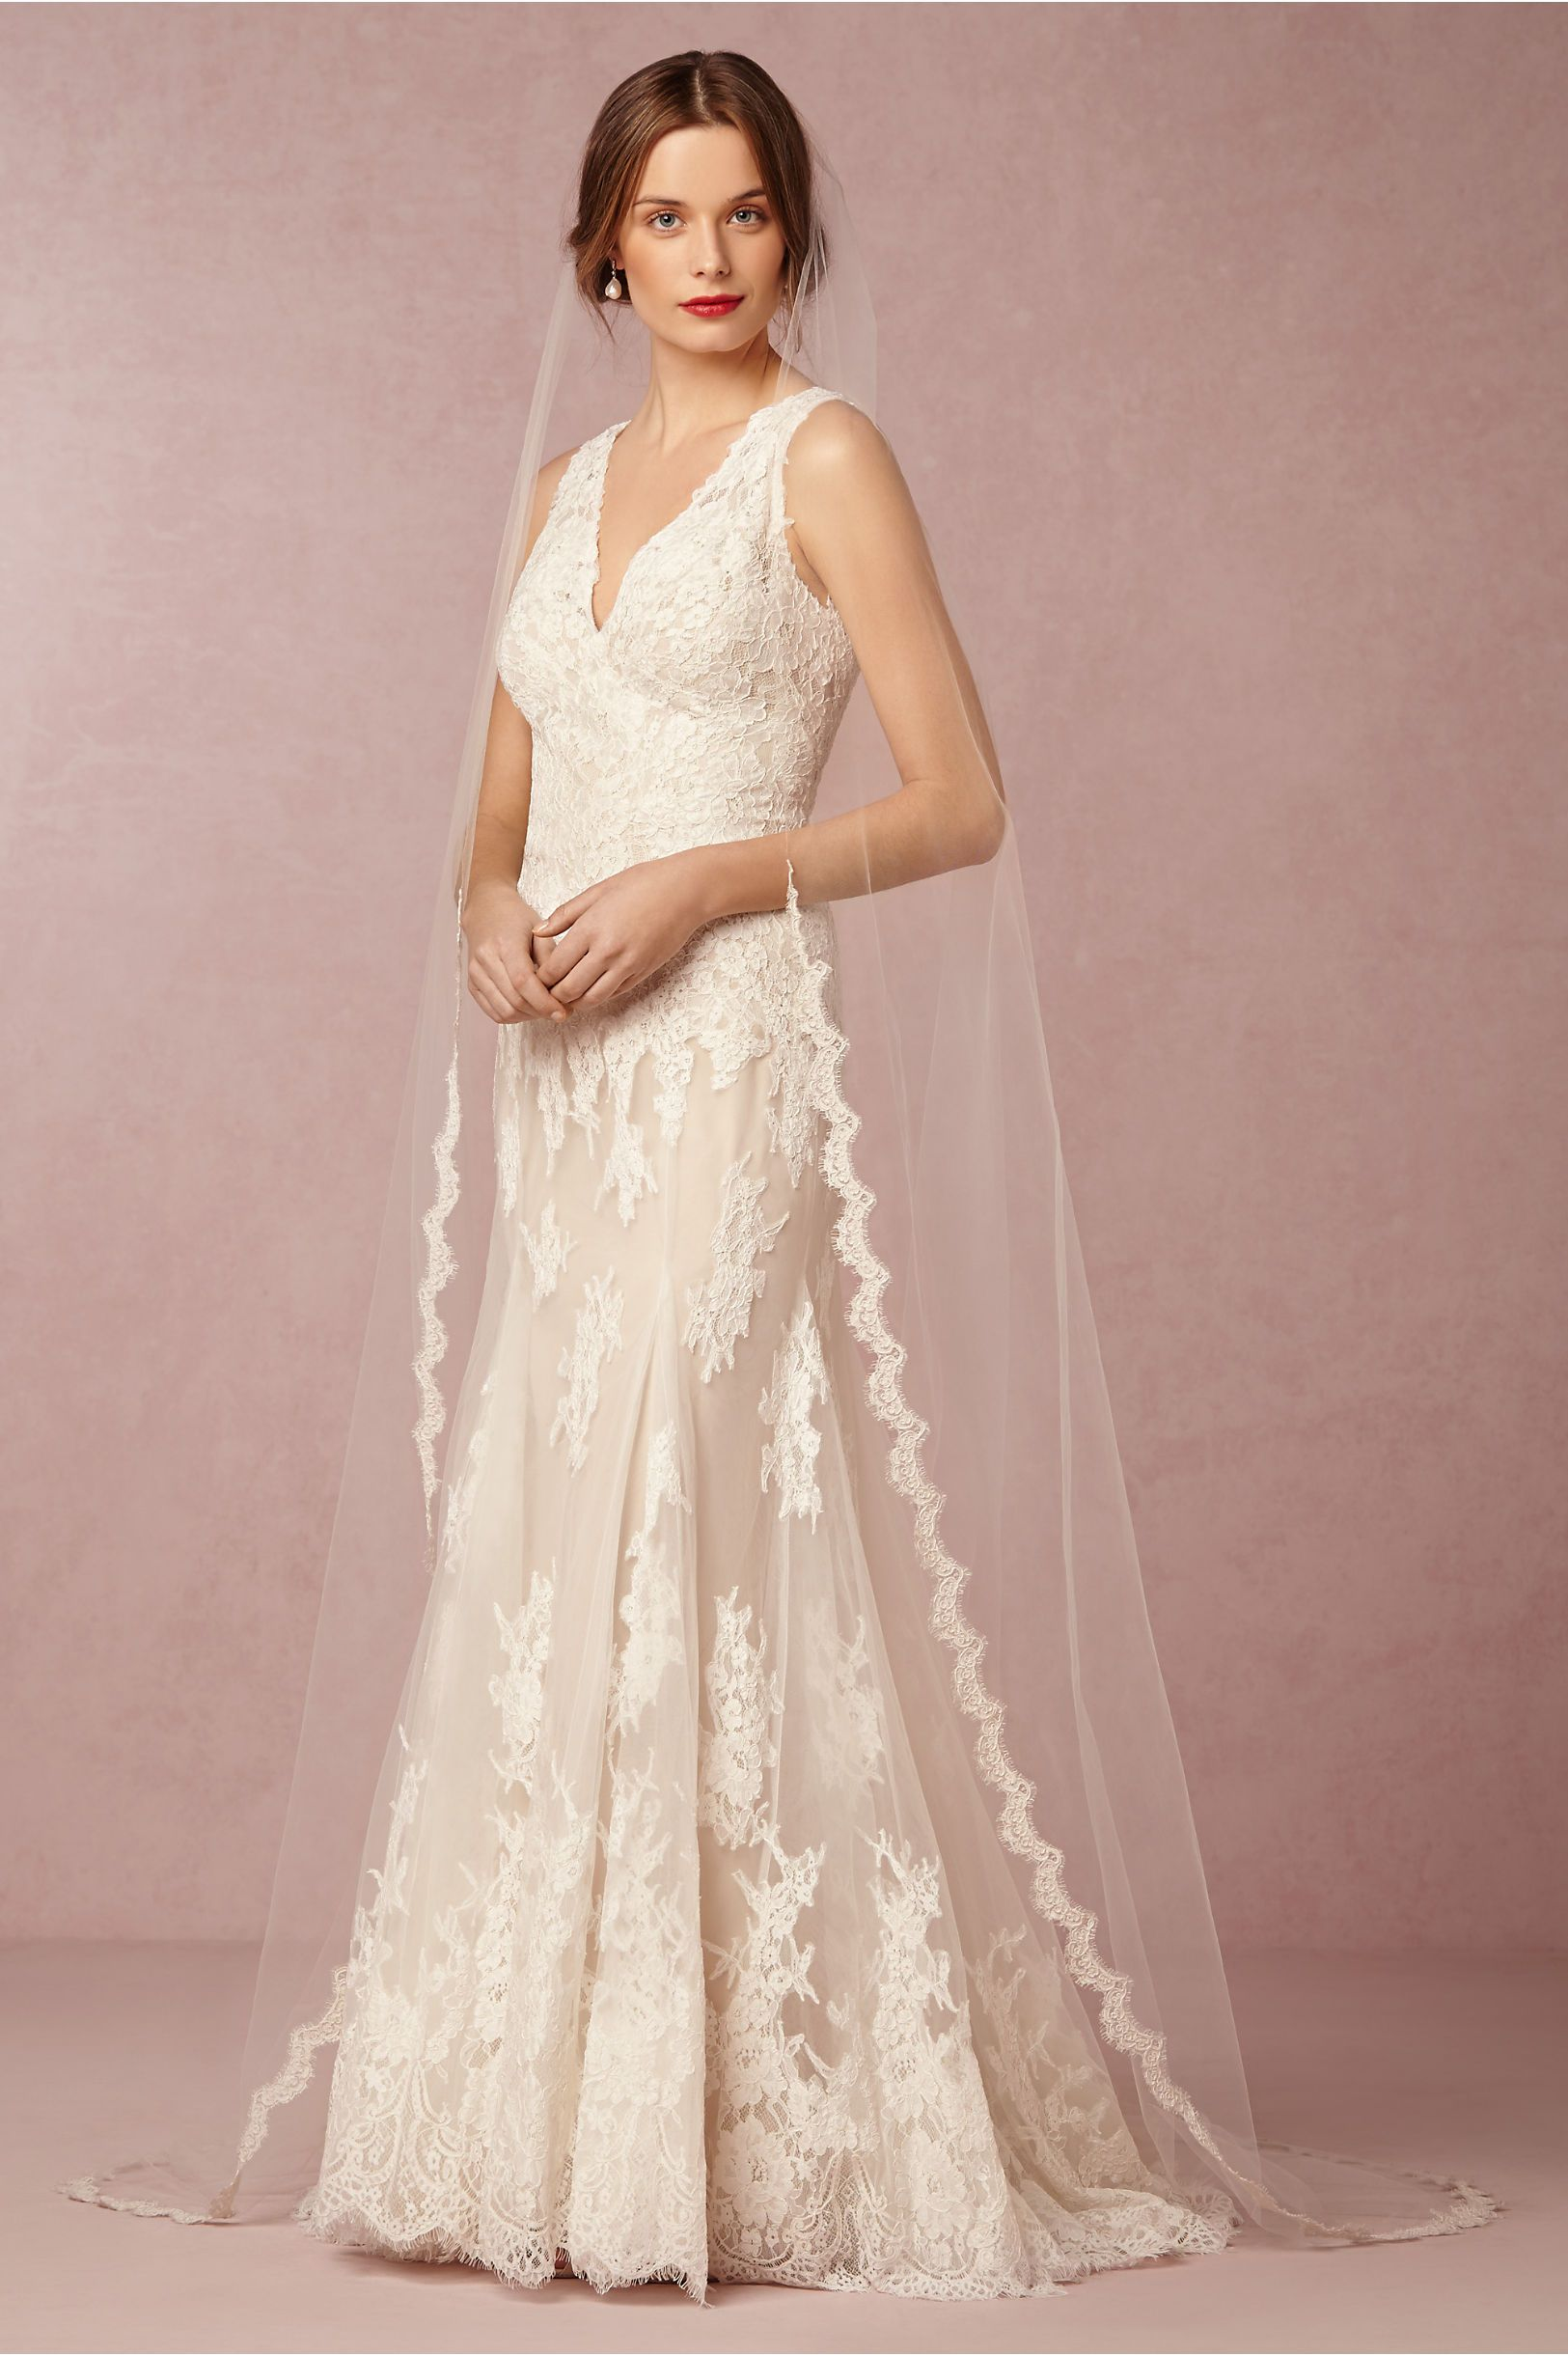 BHLDN Curving Periphery Veil in Bride Veils & Headpieces Veils at ...